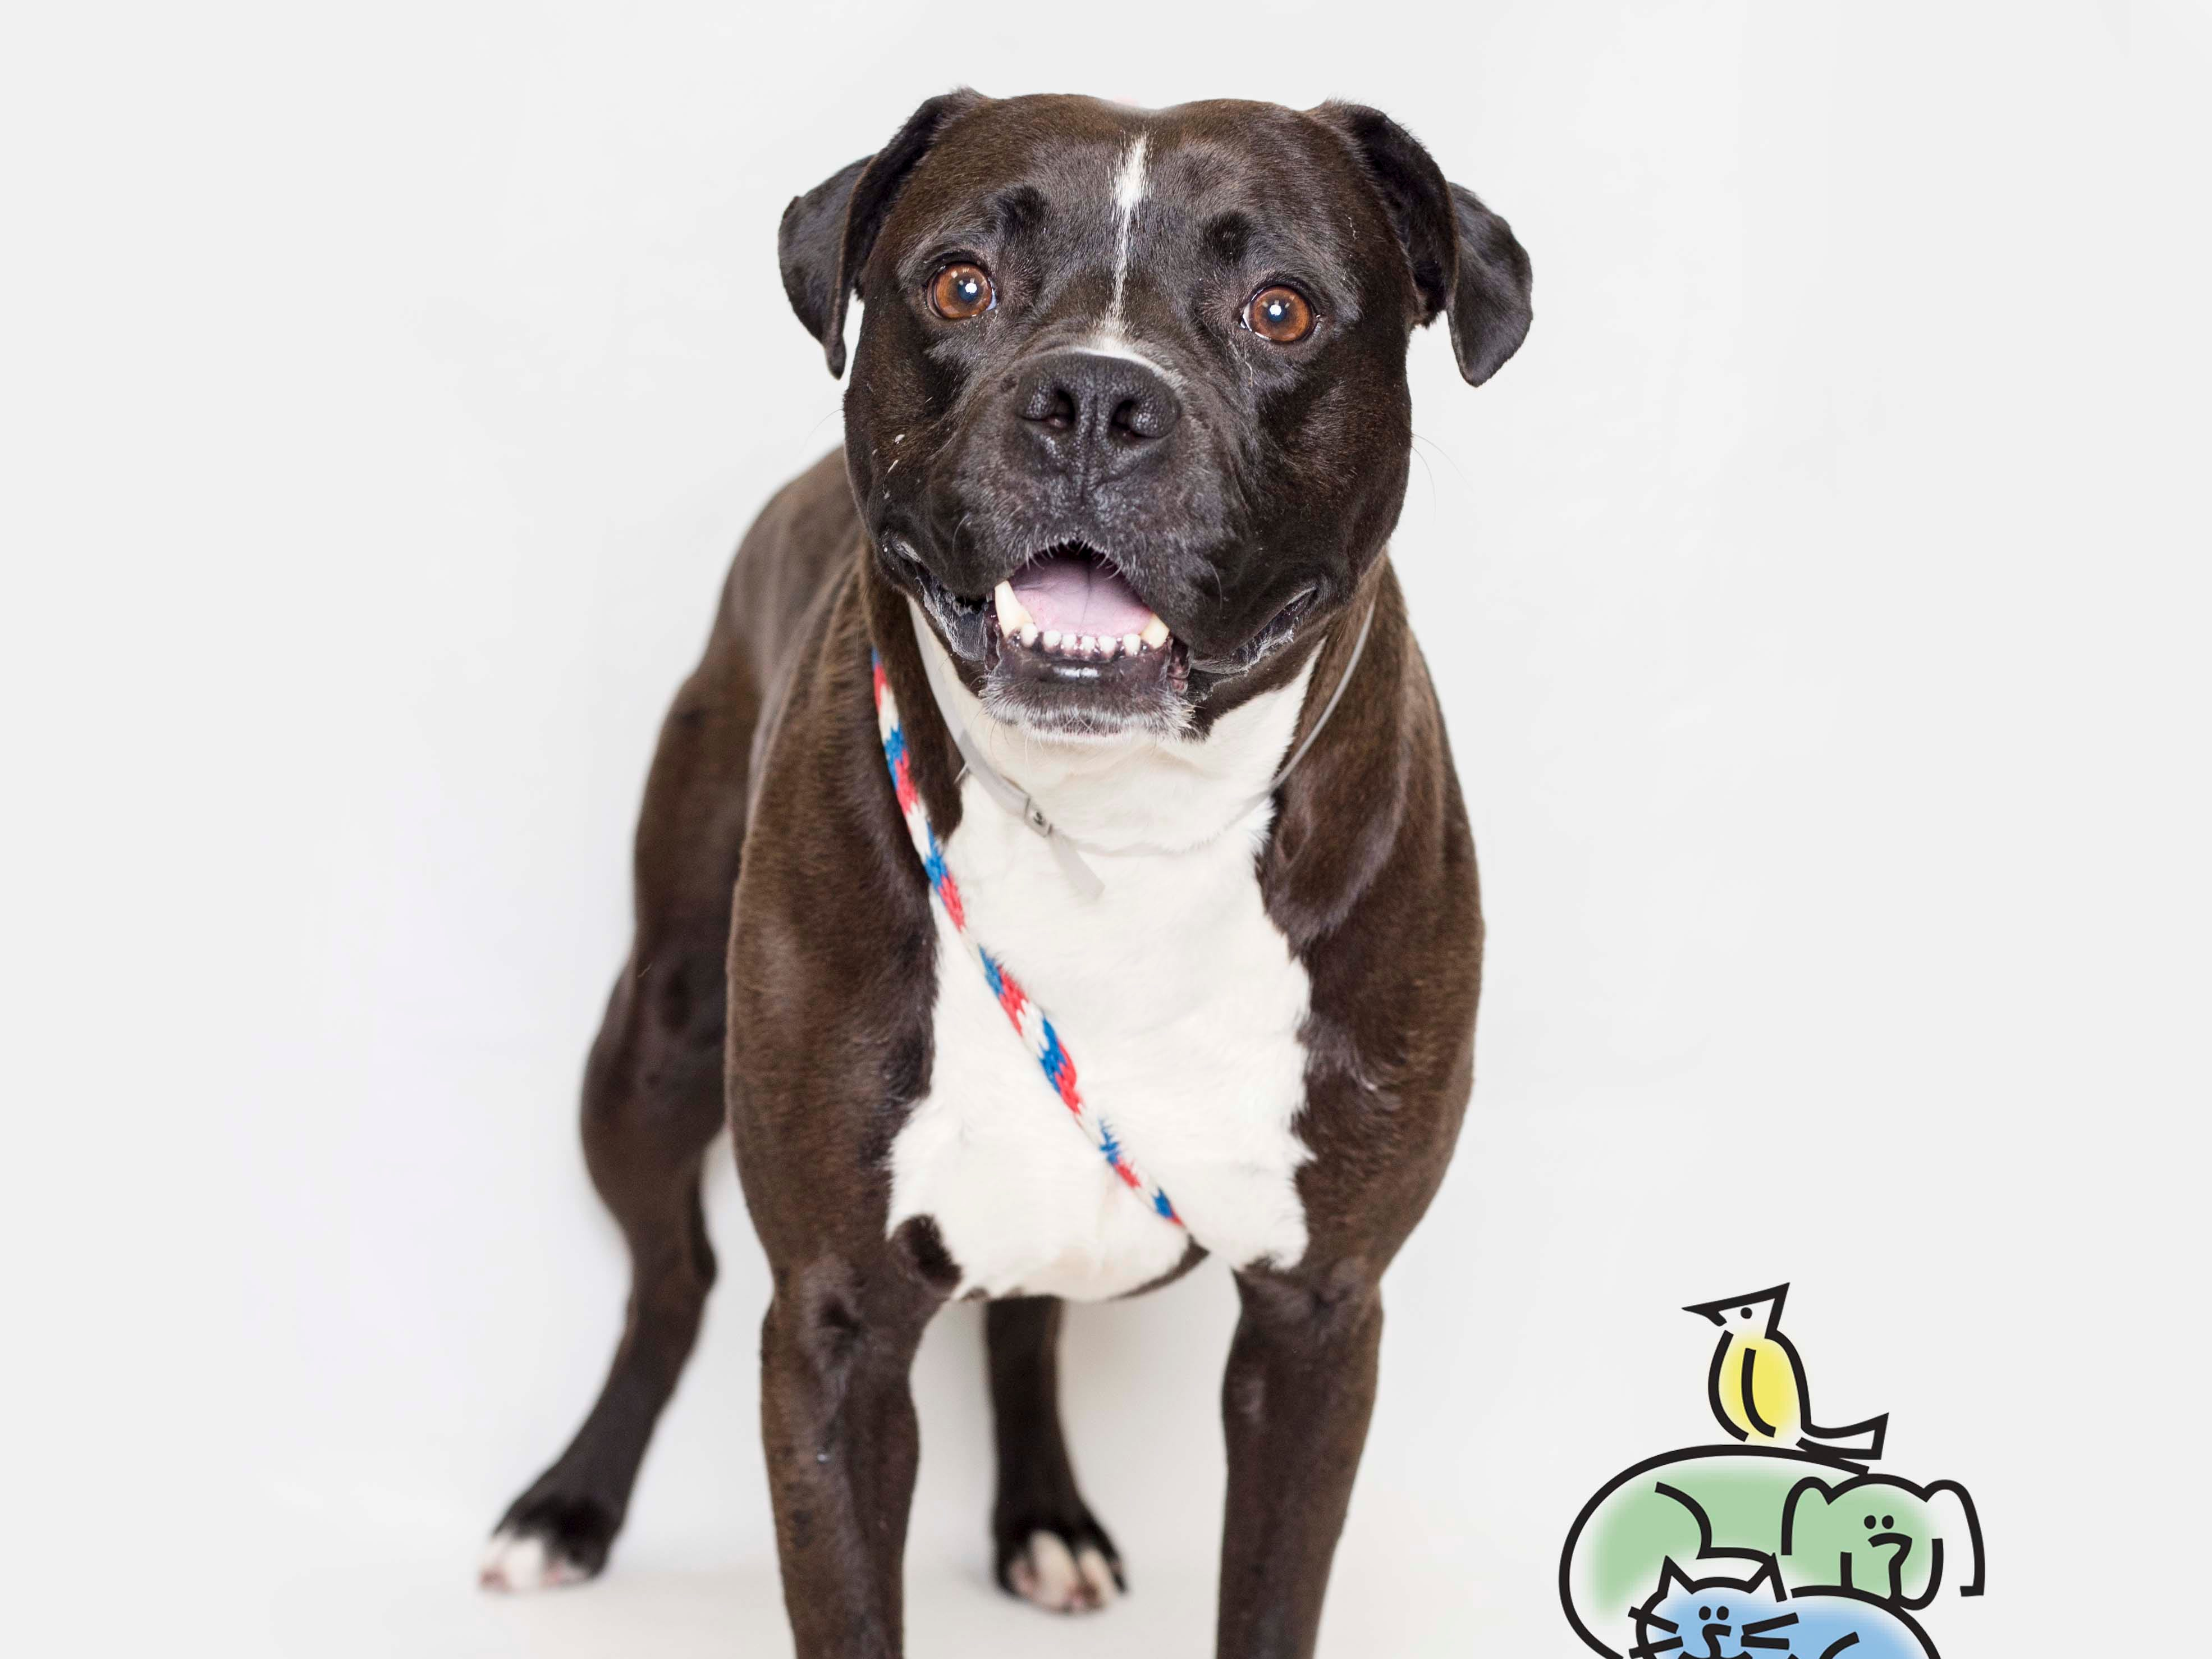 Doug is up for adoption at Young-Williams animal center on Thursday, March 21, 2019.